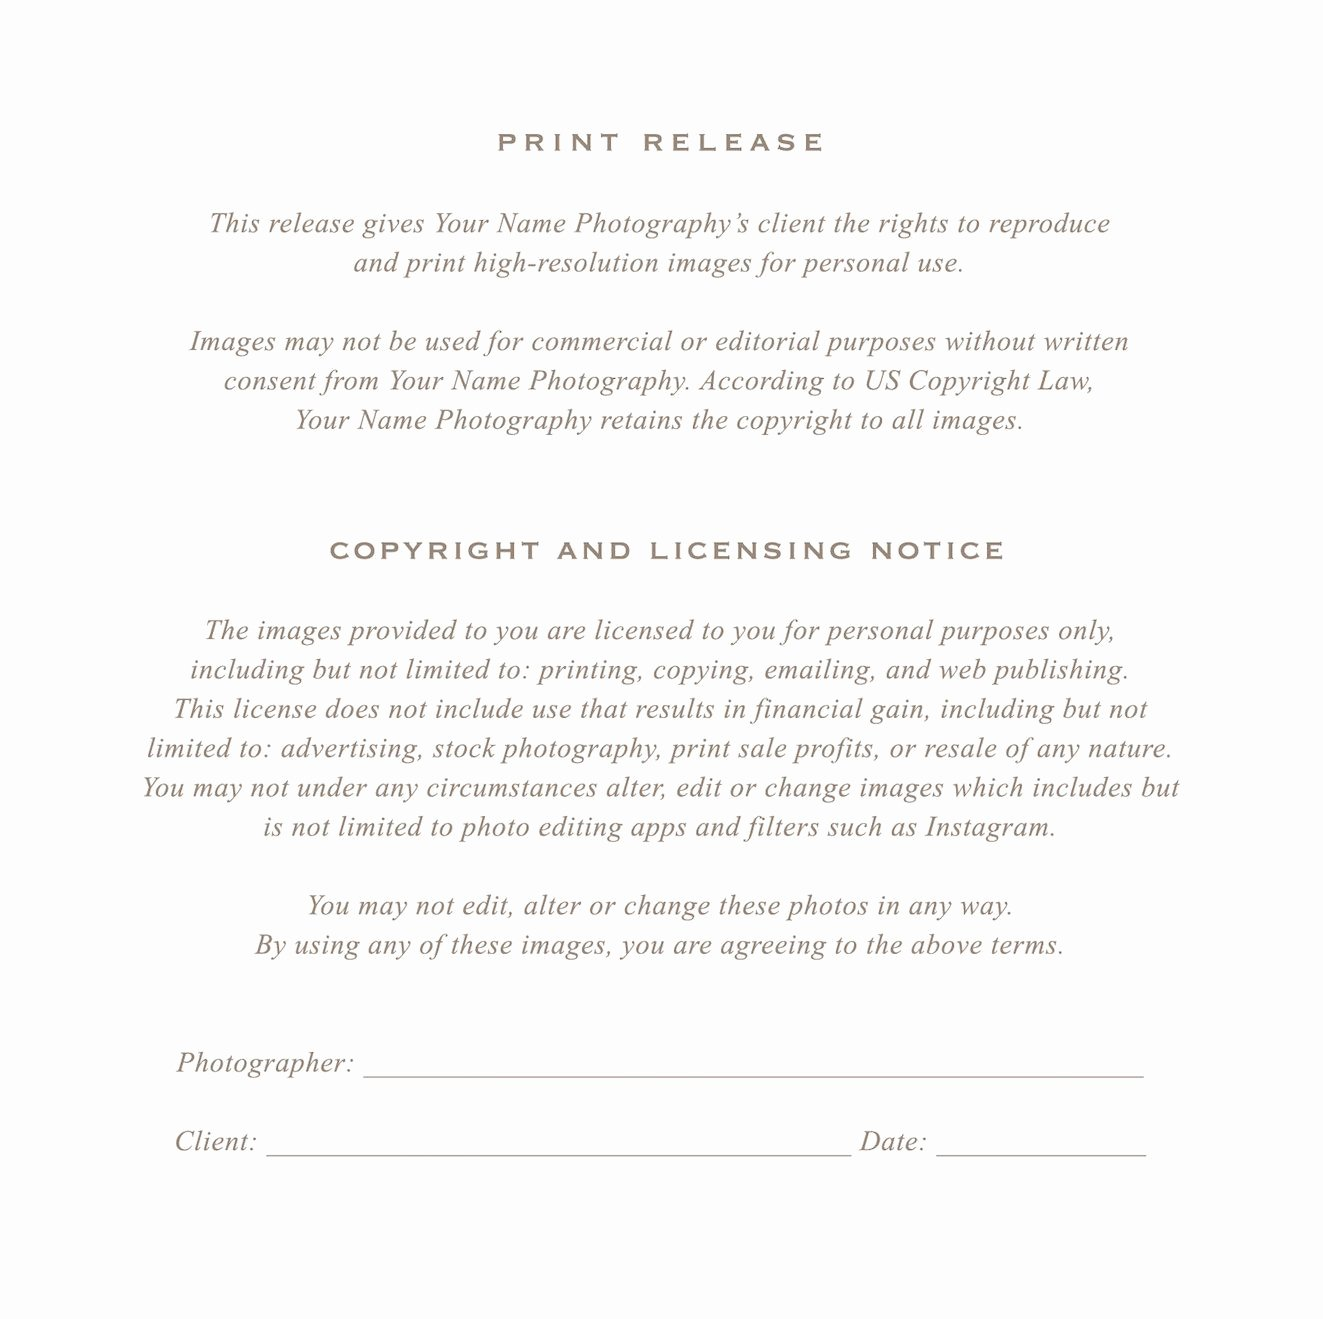 Free Printable Print Release form Elegant Grapher Print Release form by